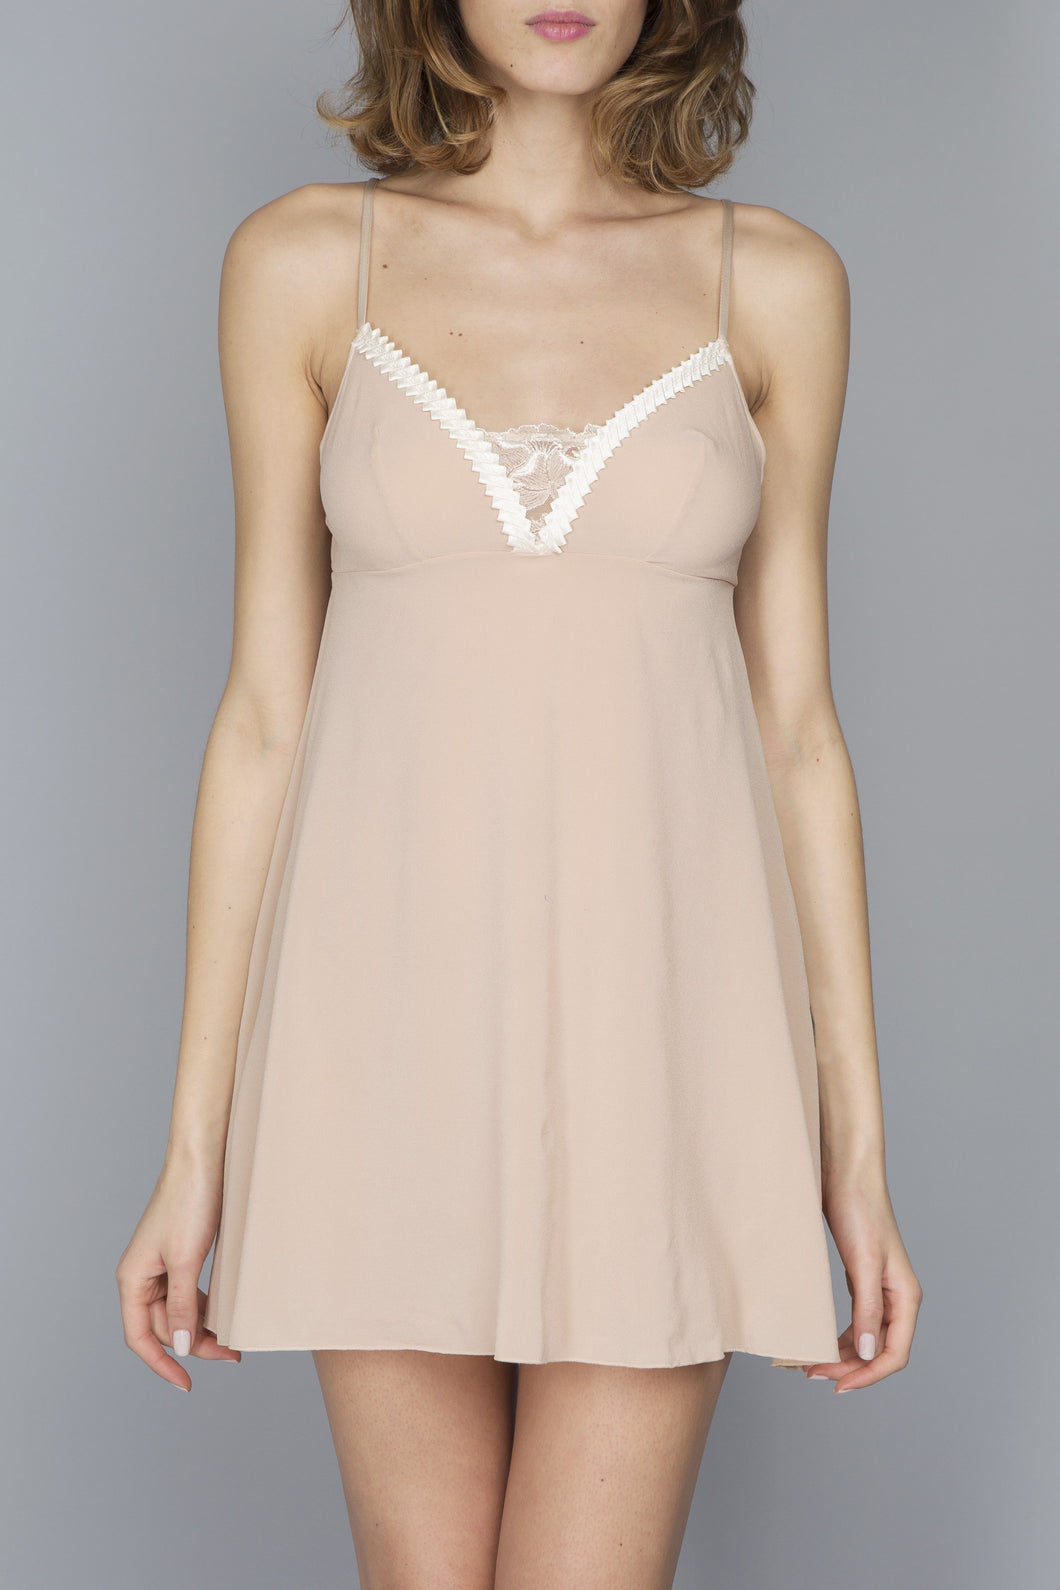 Geisha Nightie Dune by Maison Lejaby